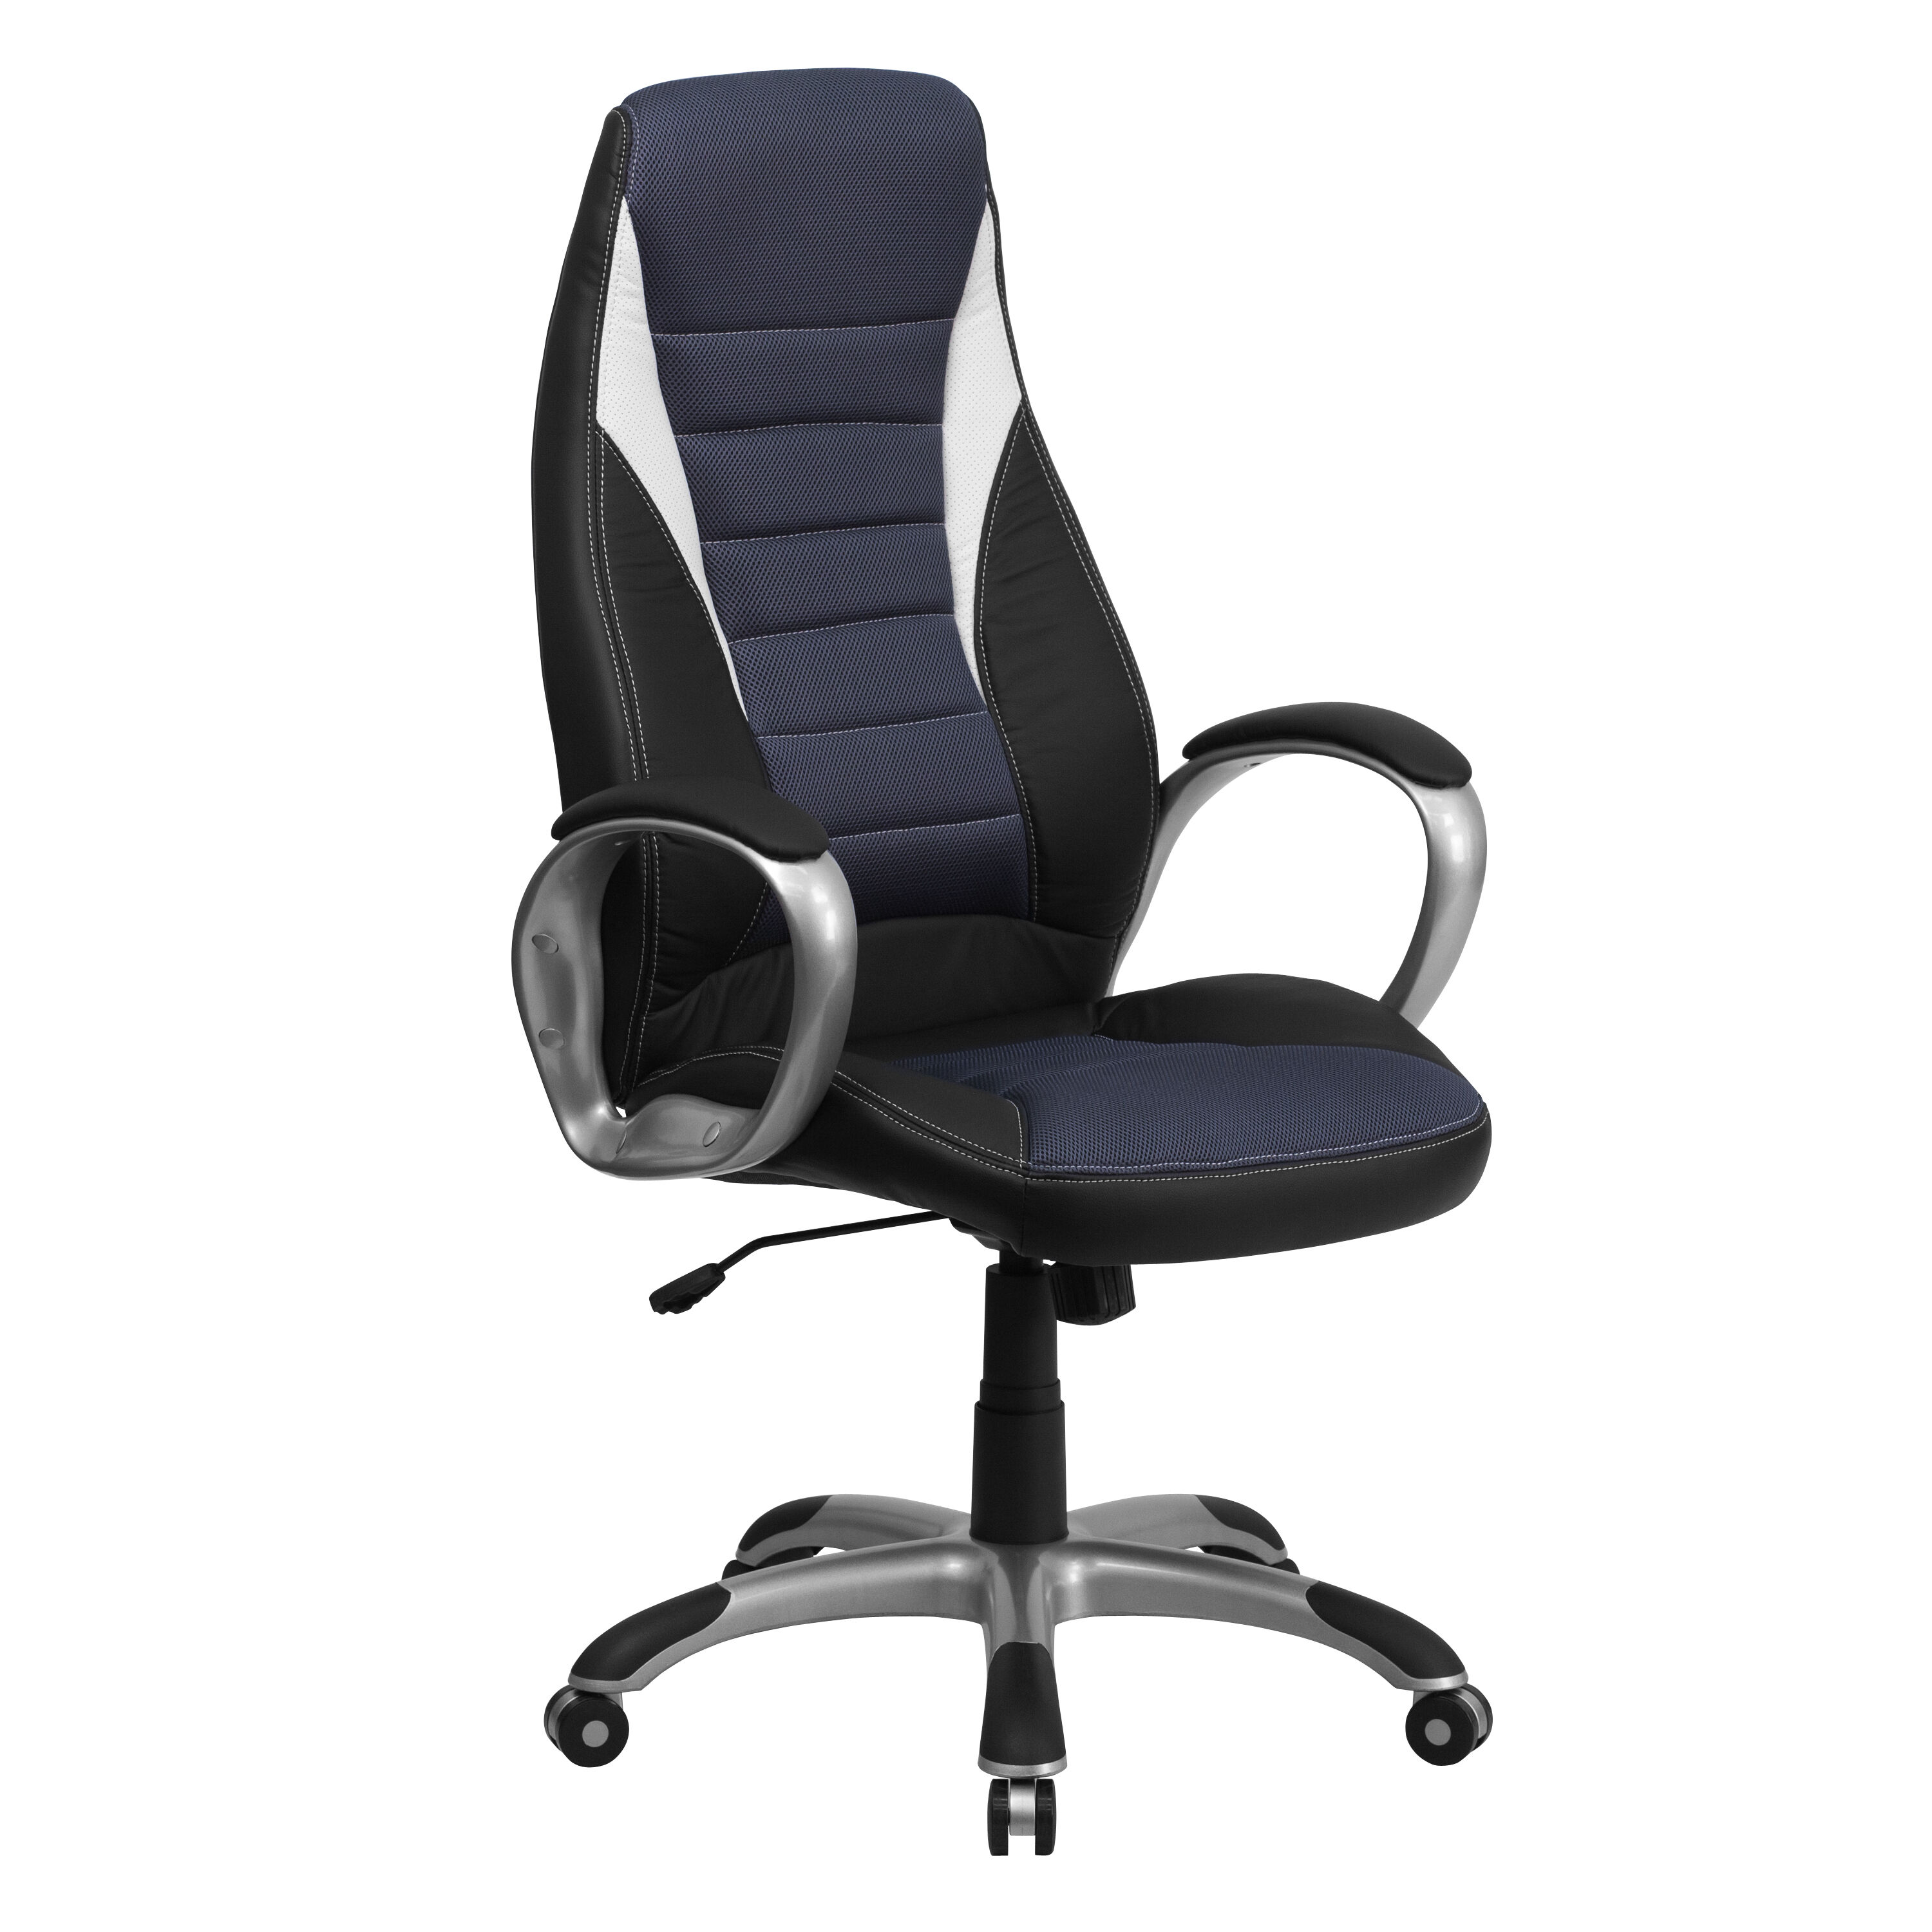 Desk Chairs Without Rollers Flash Furniture Ch Cx0243h Sat Gg Bizchair